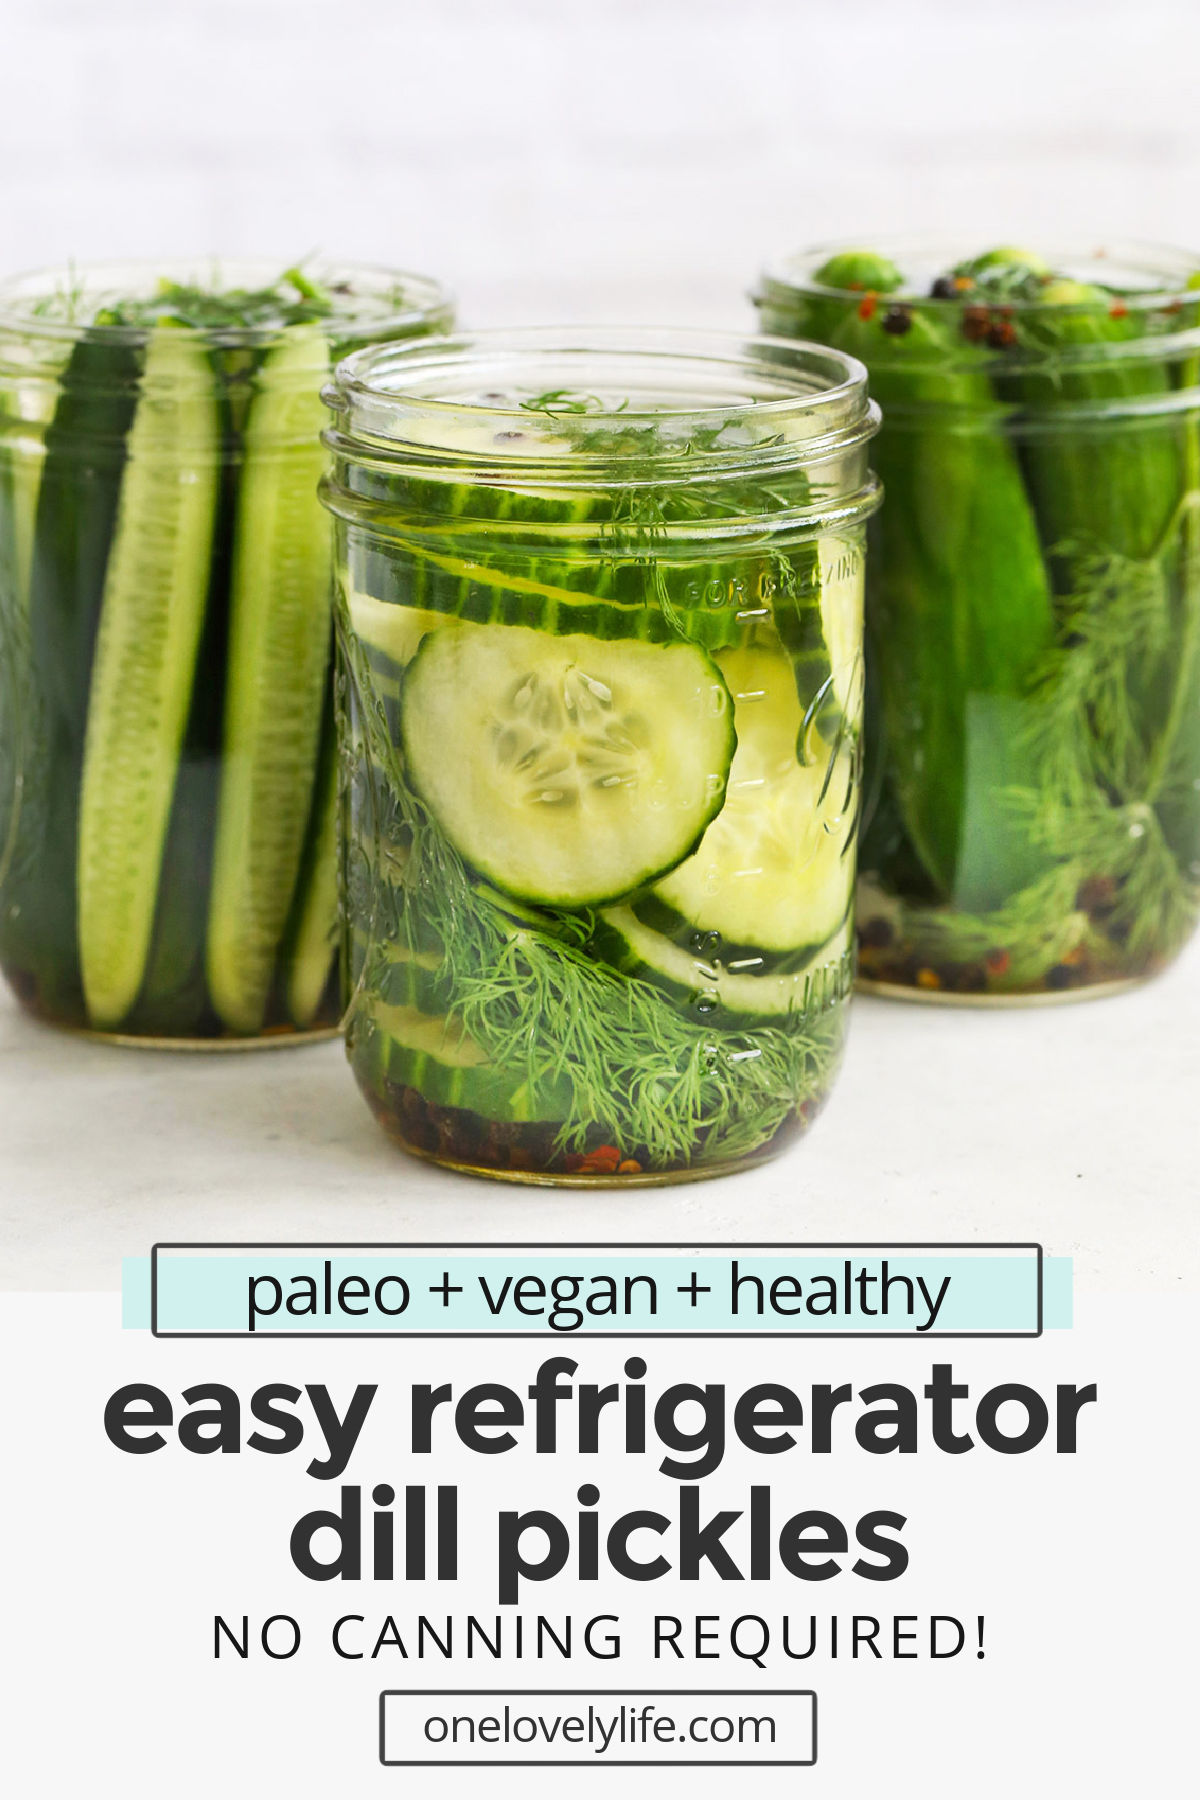 Refrigerator Dill Pickles - It's easy to make refrigerator dill pickles at home. No fancy equipment or special skills required! (Paleo, Whole30, Gluten-Free) // dill pickles recipe // refrigerator pickles recipe #pickles #dillpickles #refrigeratorpickles #summer